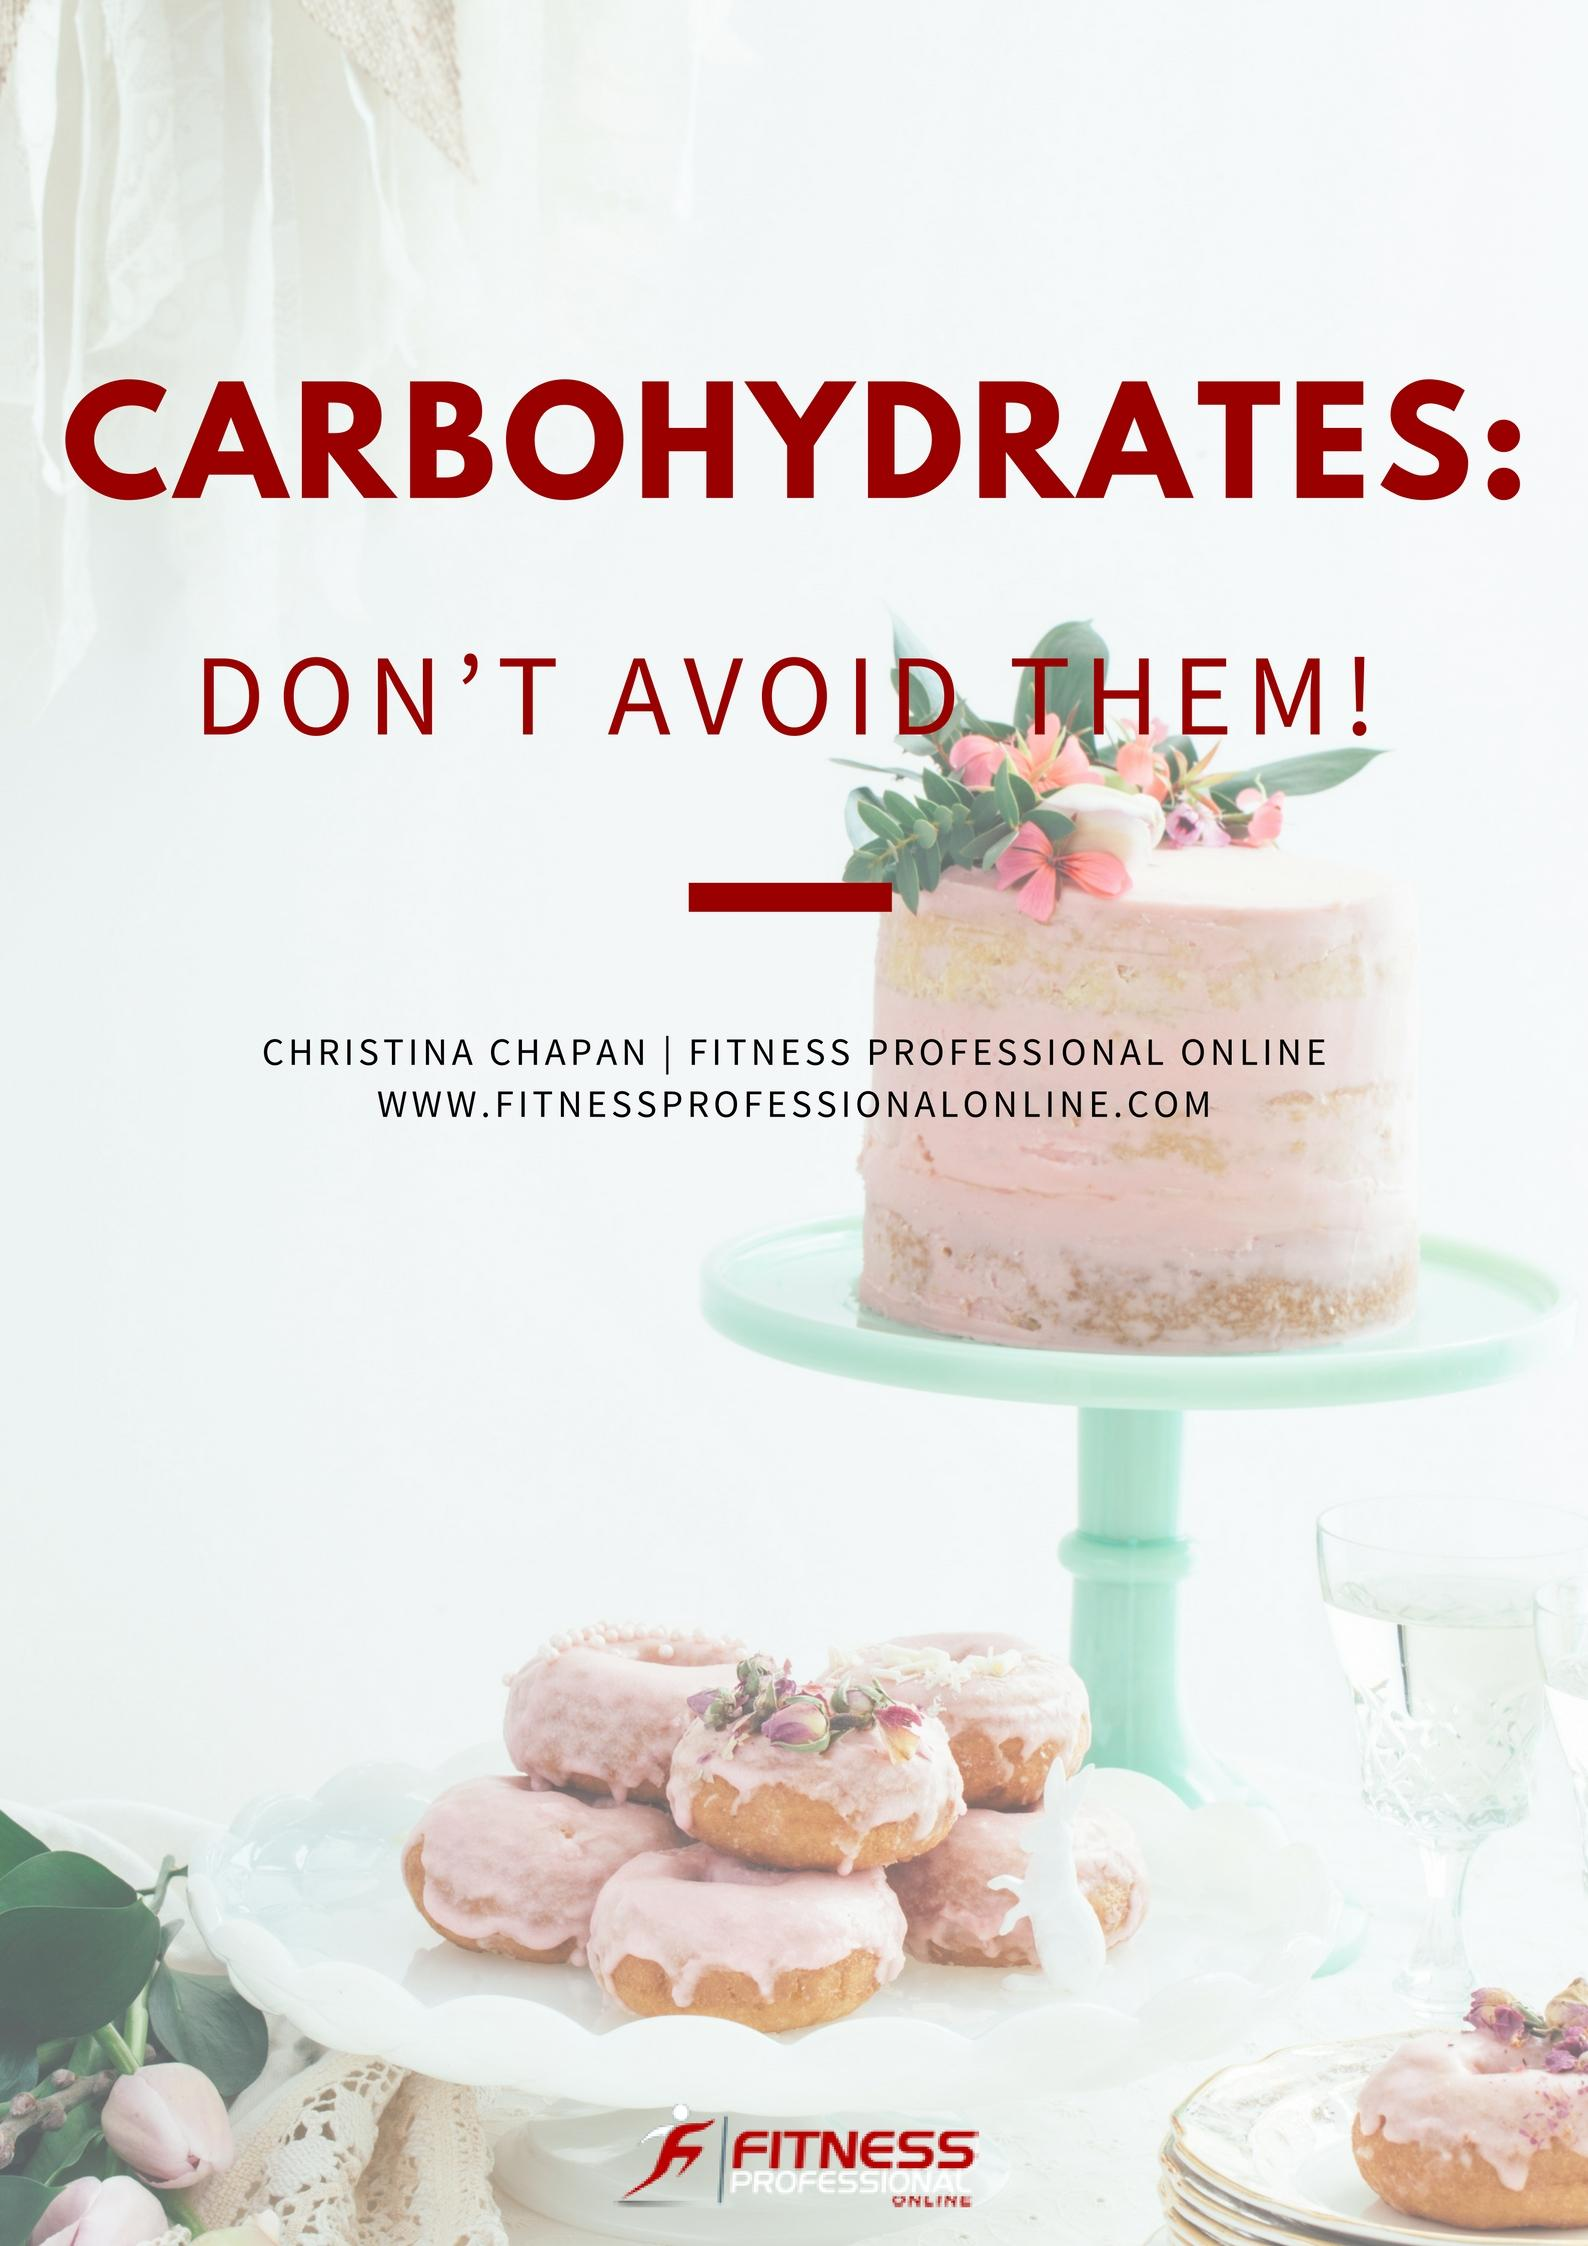 Carbohydrates are an essential part of your diet; they provide energy to fuel your daily activities.